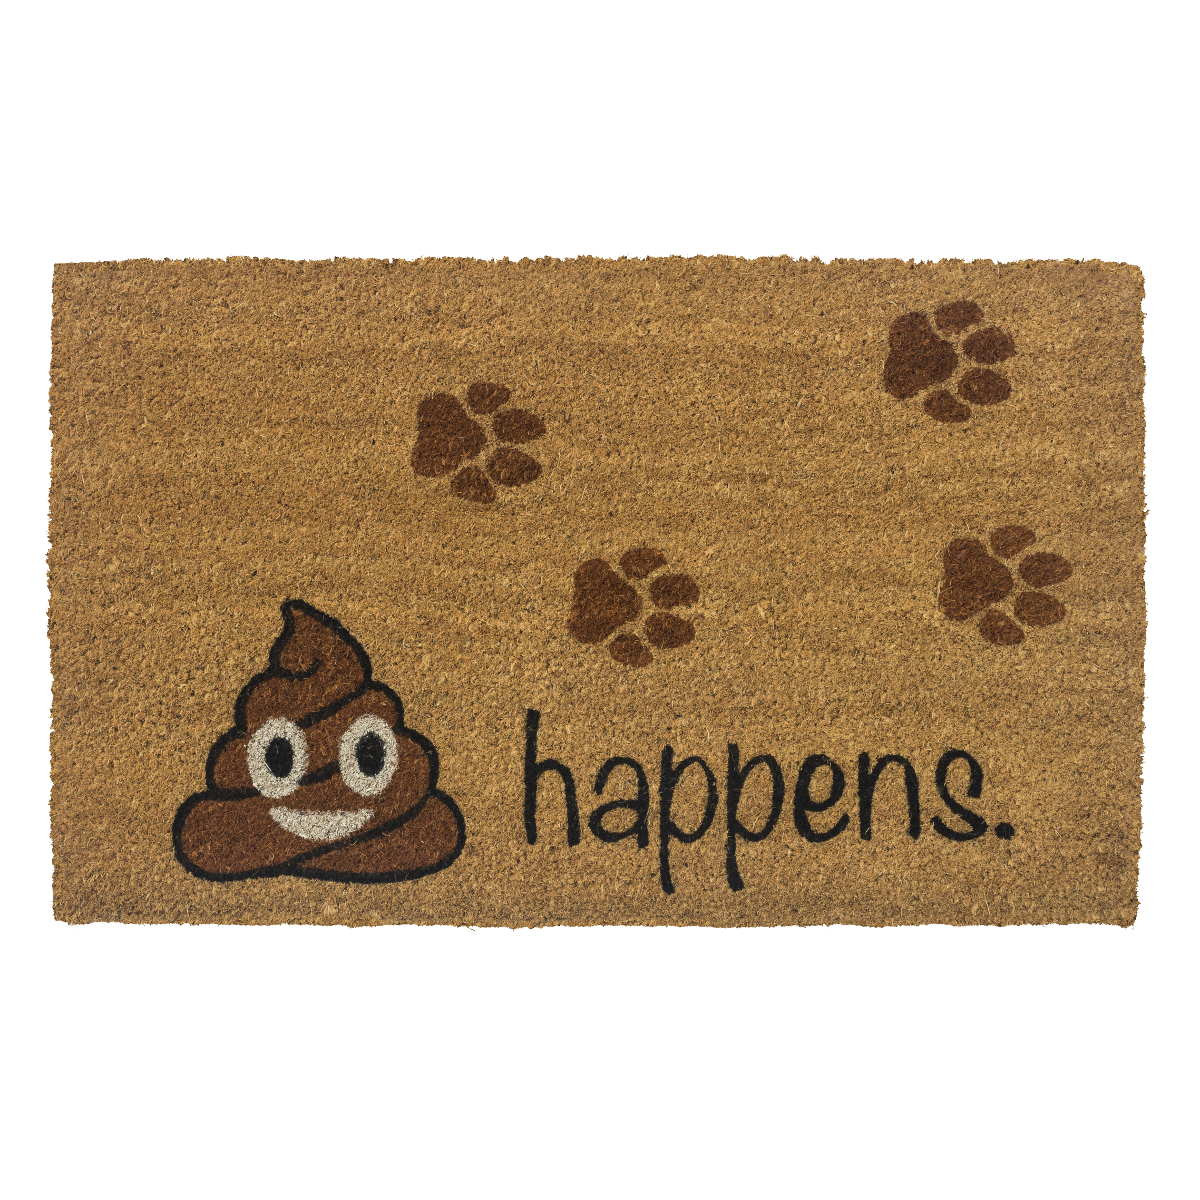 Entryways It Happens Non-Slip Coir 17 x 30 Inch Doormat